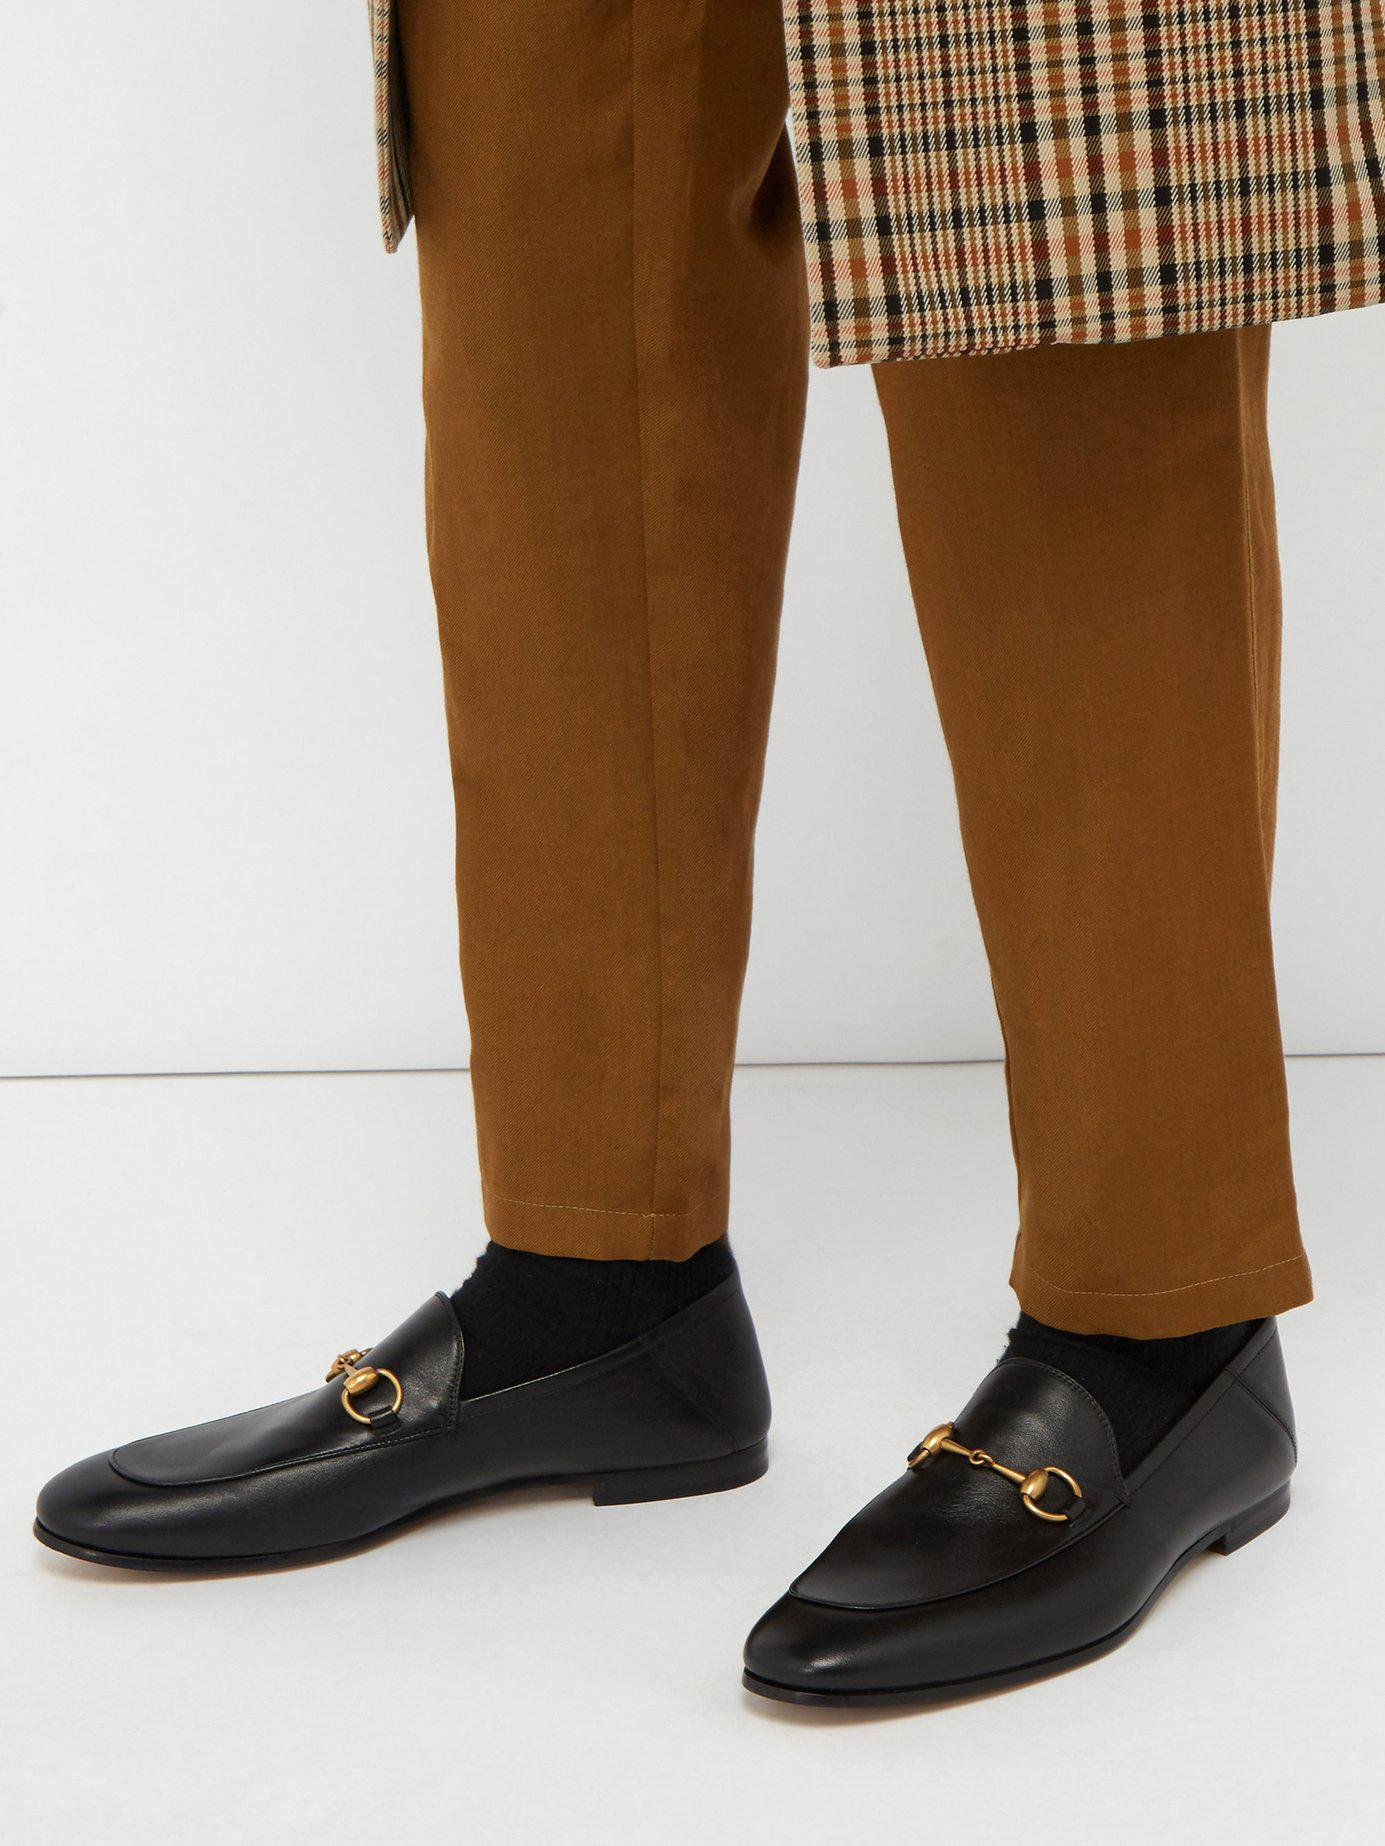 527791de250 Lyst - Gucci Brixton Leather Loafers in Black for Men